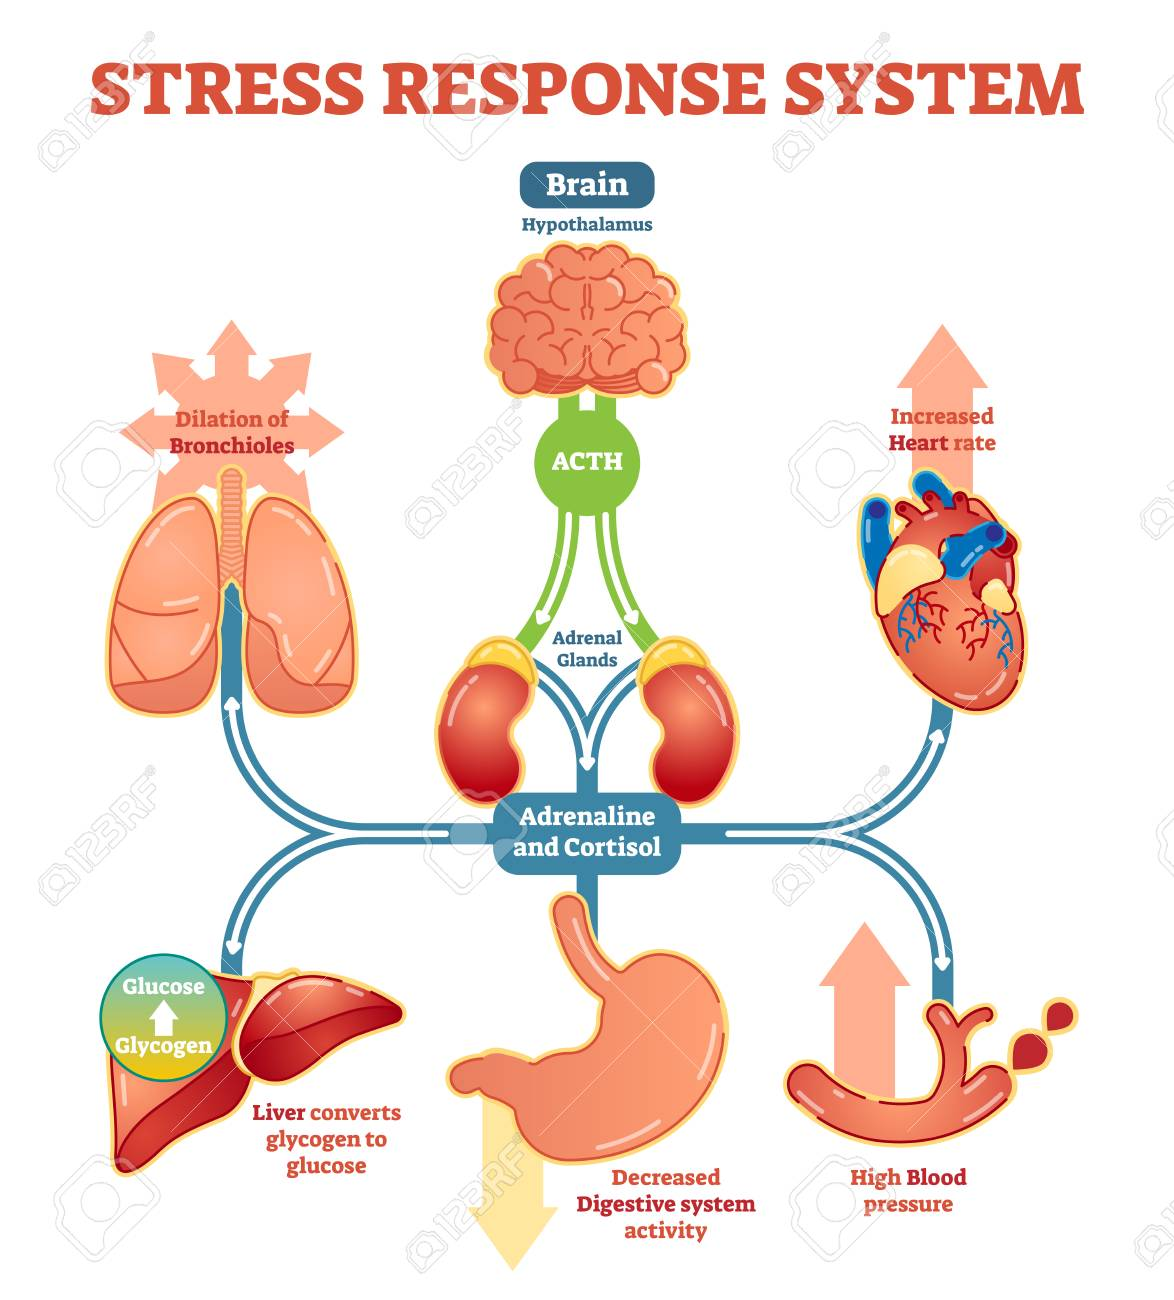 Stress Response System Vector Illustration Diagram, Nerve Impulses..  Royalty Free Cliparts, Vectors, And Stock Illustration. Image 96080139.